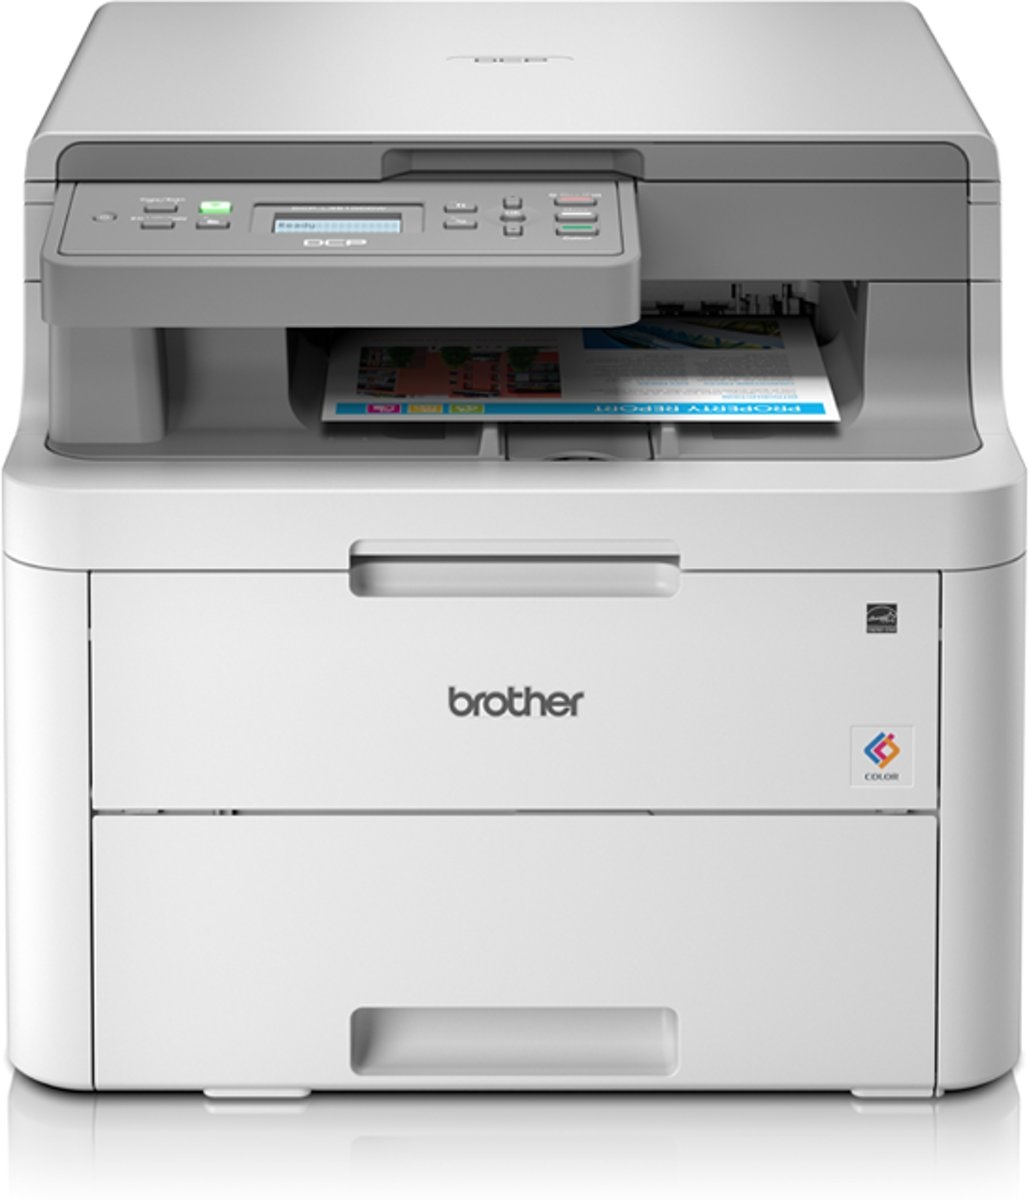 DCP-L3510CDW - Draadloze All-In-One Kleurenledprinter